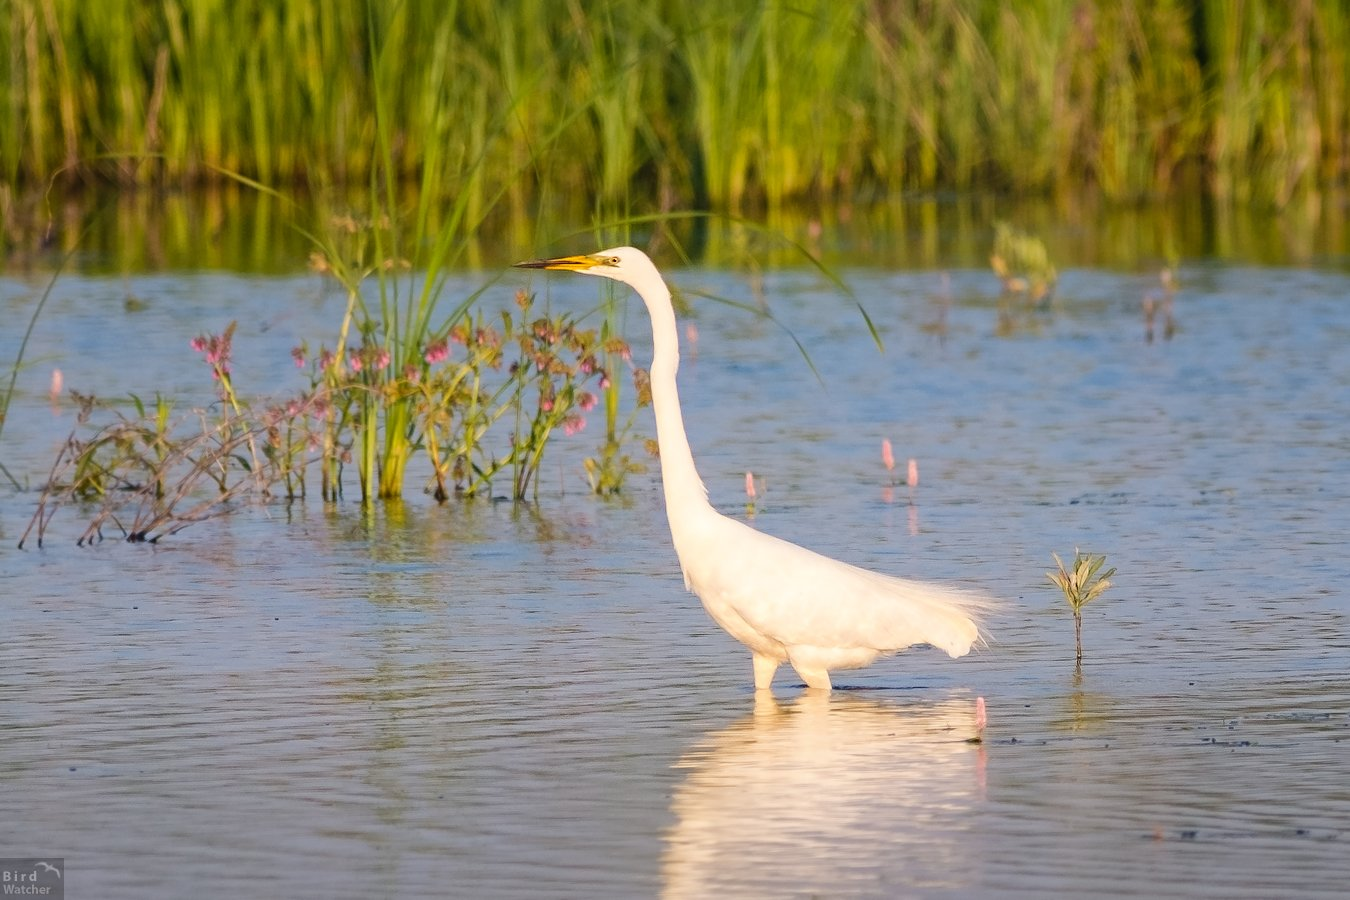 Ardea alba, bird, birds, nature, болото, лето, природа, птицы, белая цапля, birdwatcher, Great egret, Bird Watcher